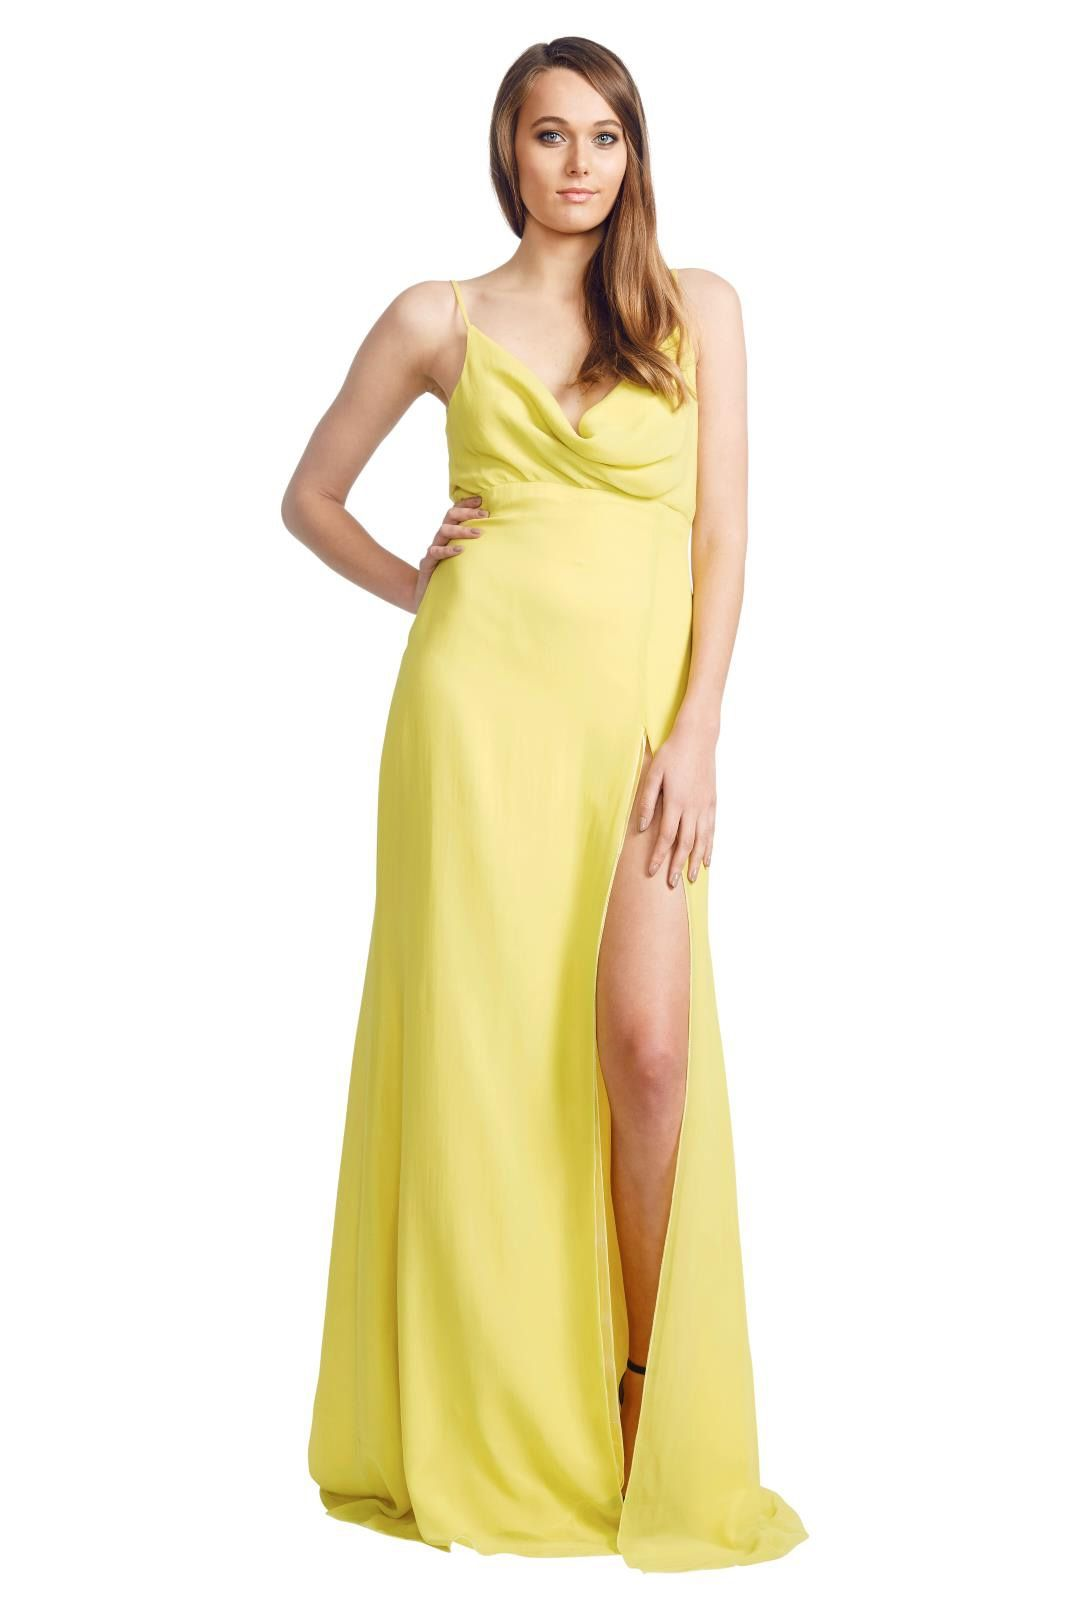 Ae'lkemi - Cowl Front Gown - Yellow - Front